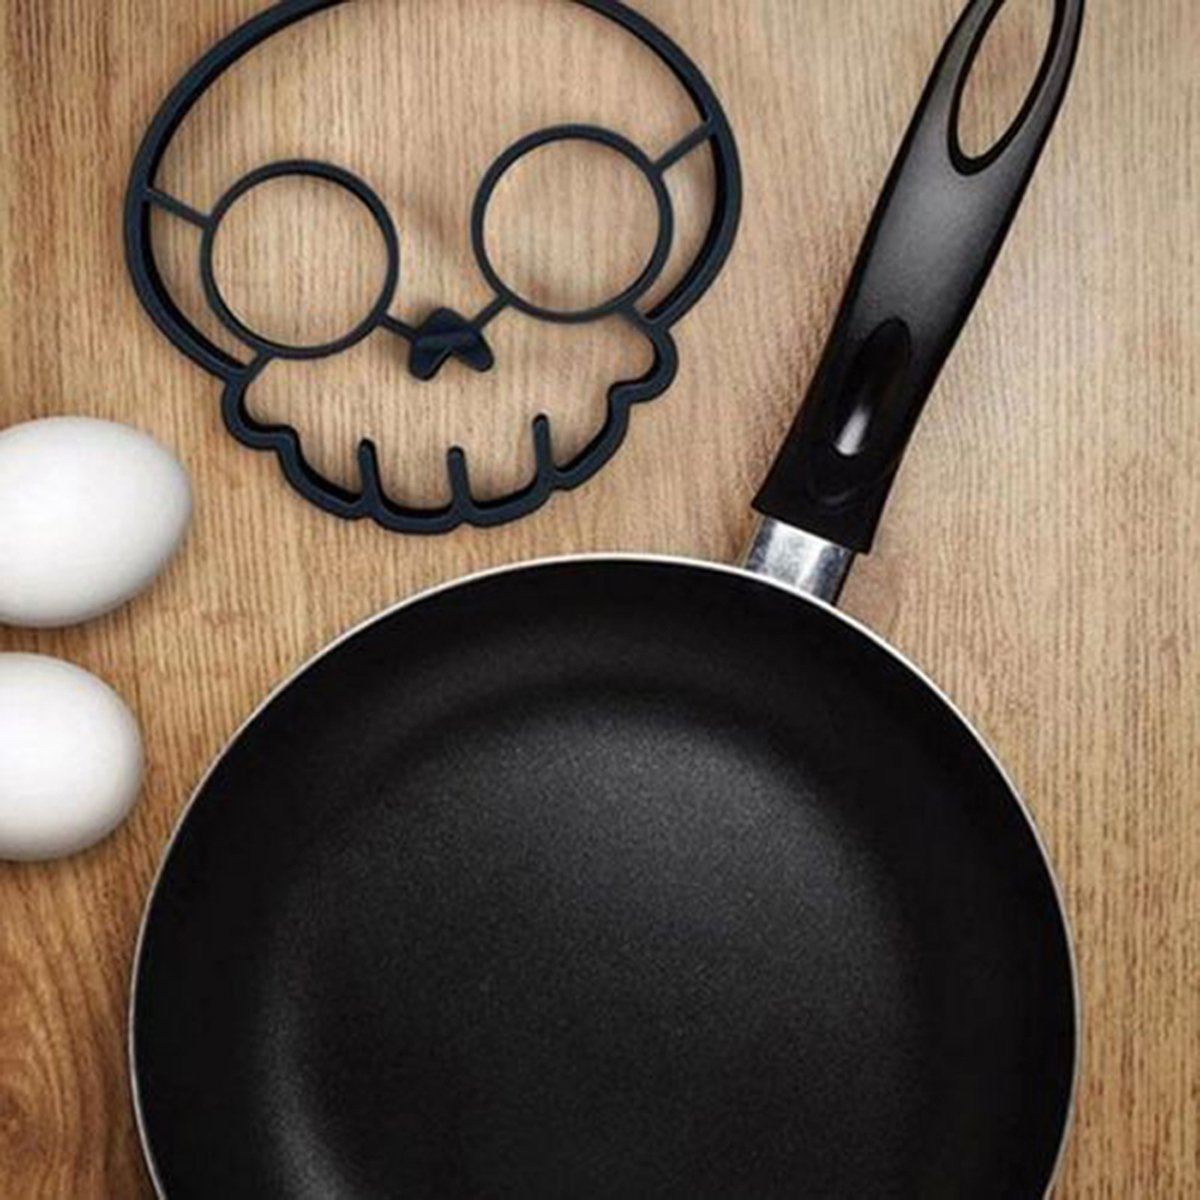 Silicon Skull Egg Mold